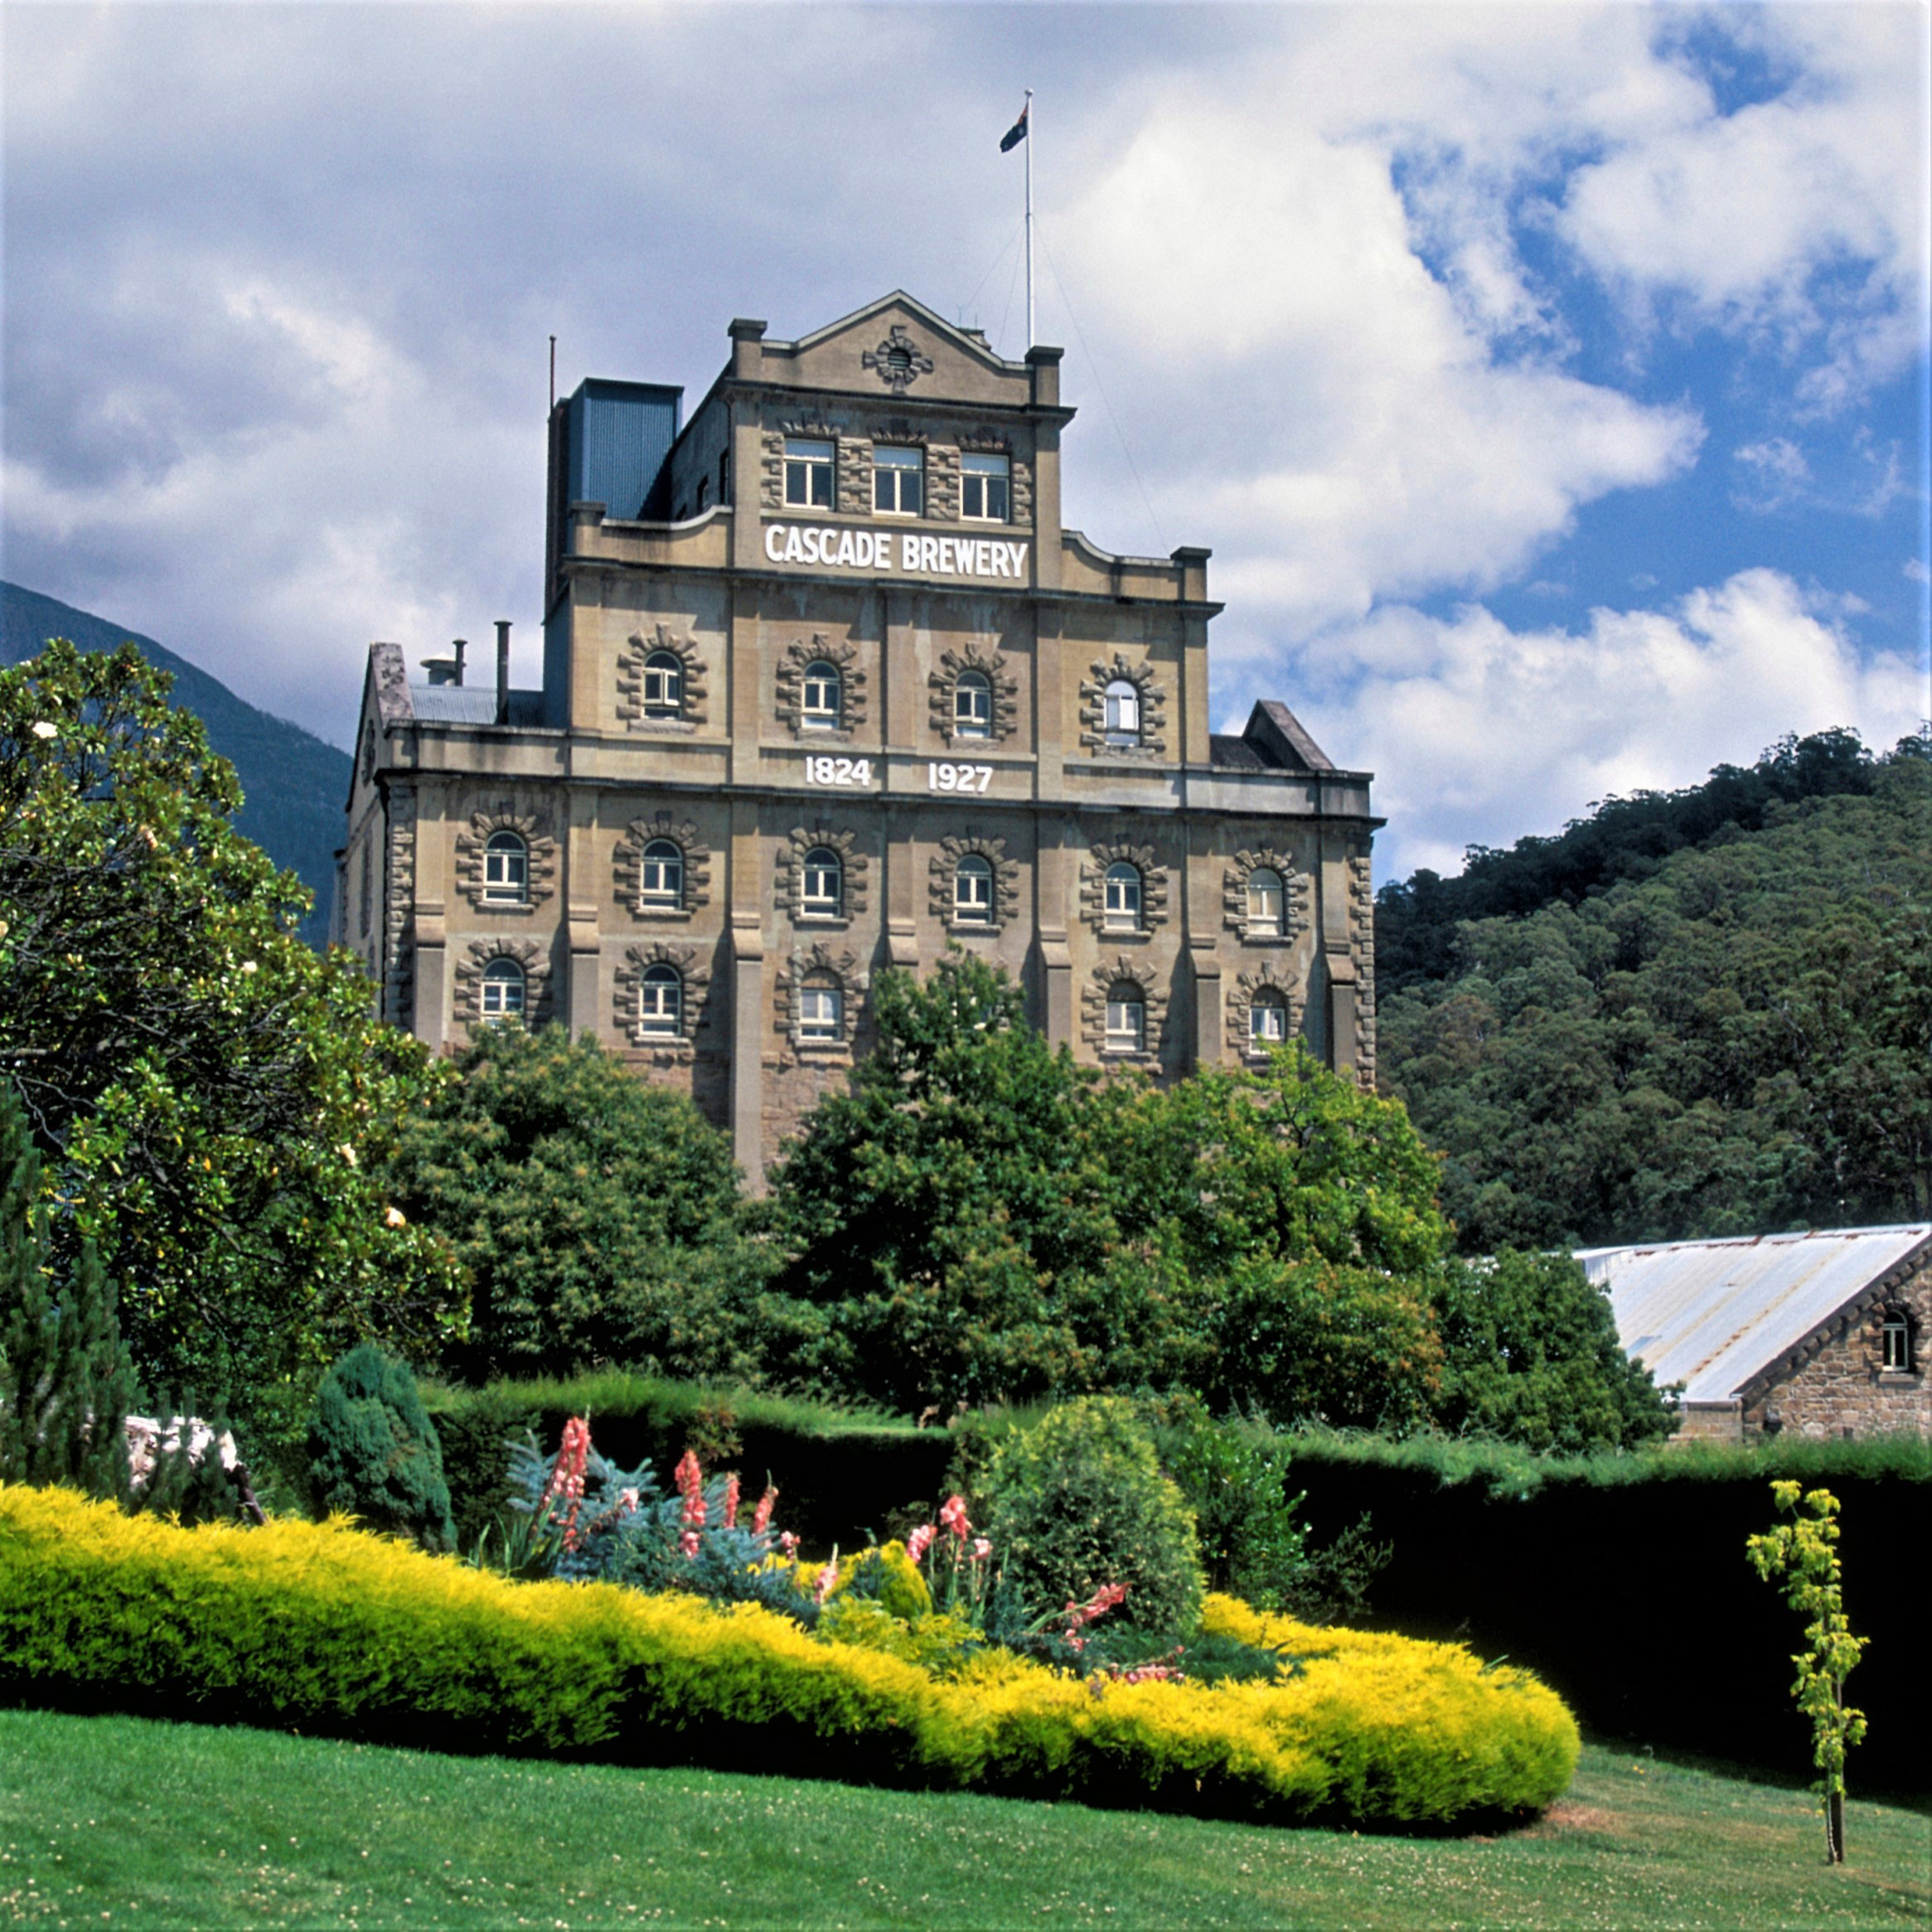 Cascade Brewery - Established in 1824 it is the oldest continually operating brewery in Australia.Nestled at the foot of kunanyi/Mount Wellington in a beautiful building surrounded by lush gardens.